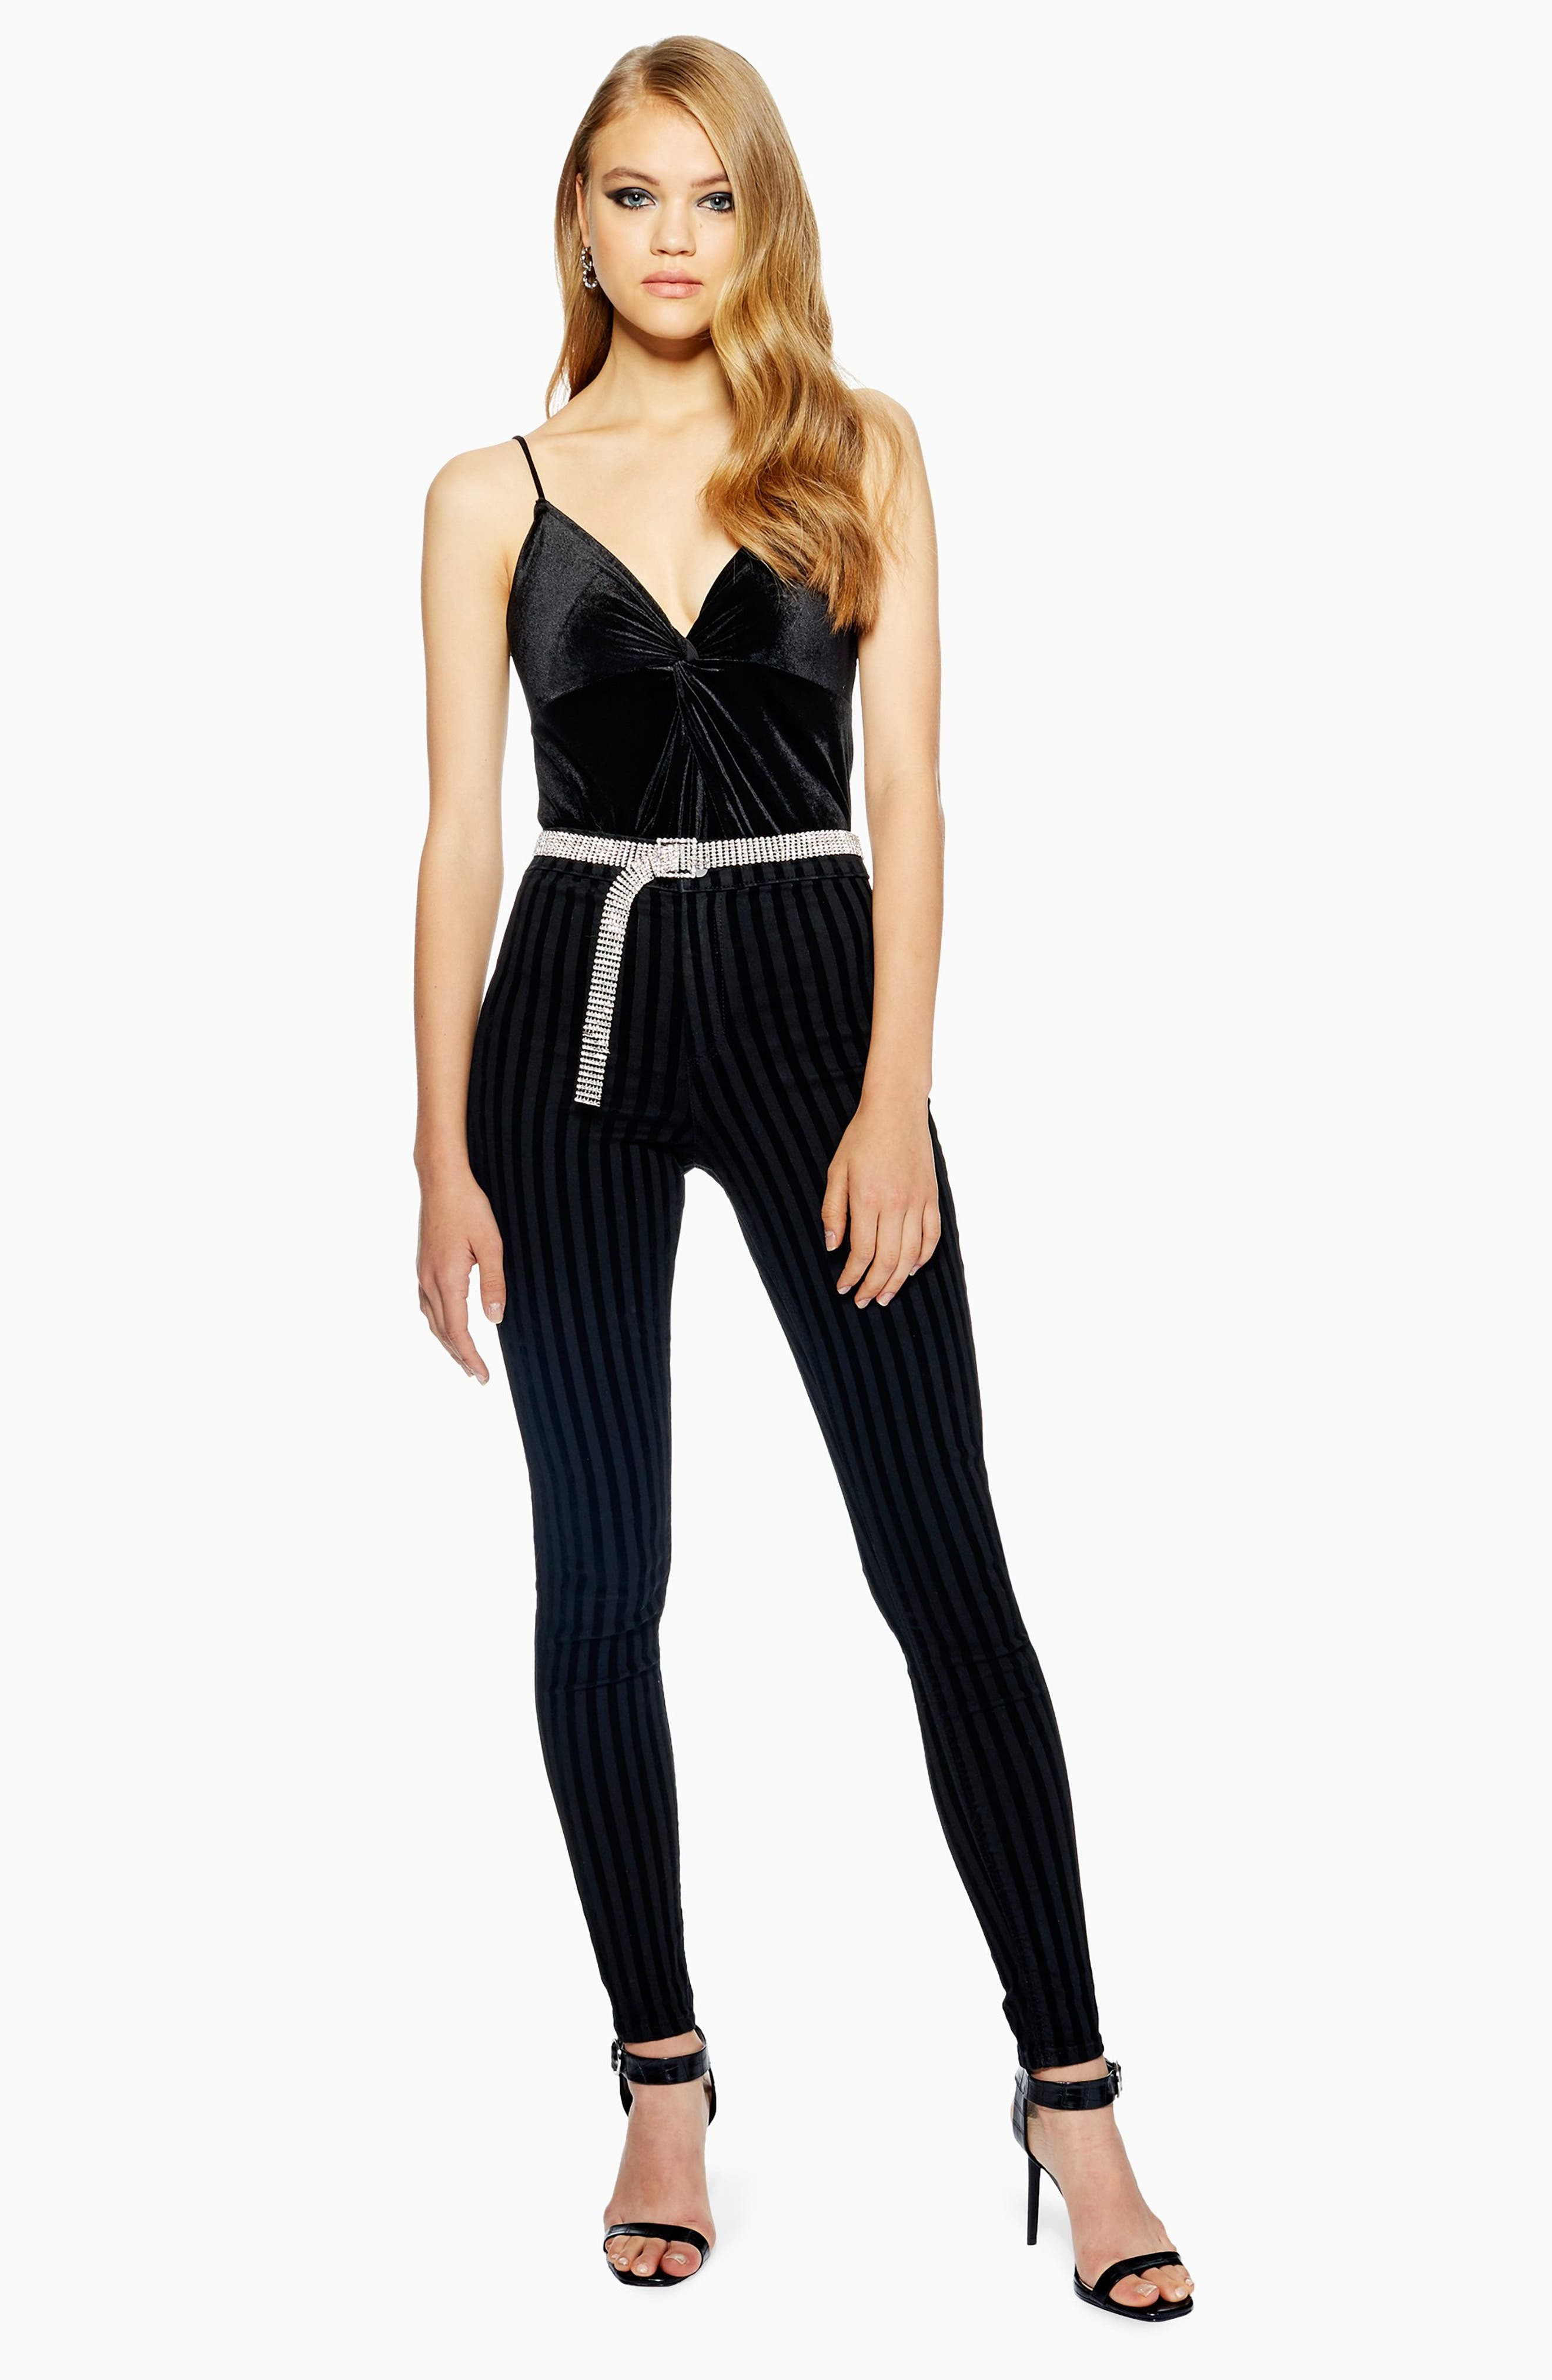 TOPSHOP, Velvet Front Knot Bodysuit, Alternate thumbnail 4, color, 001